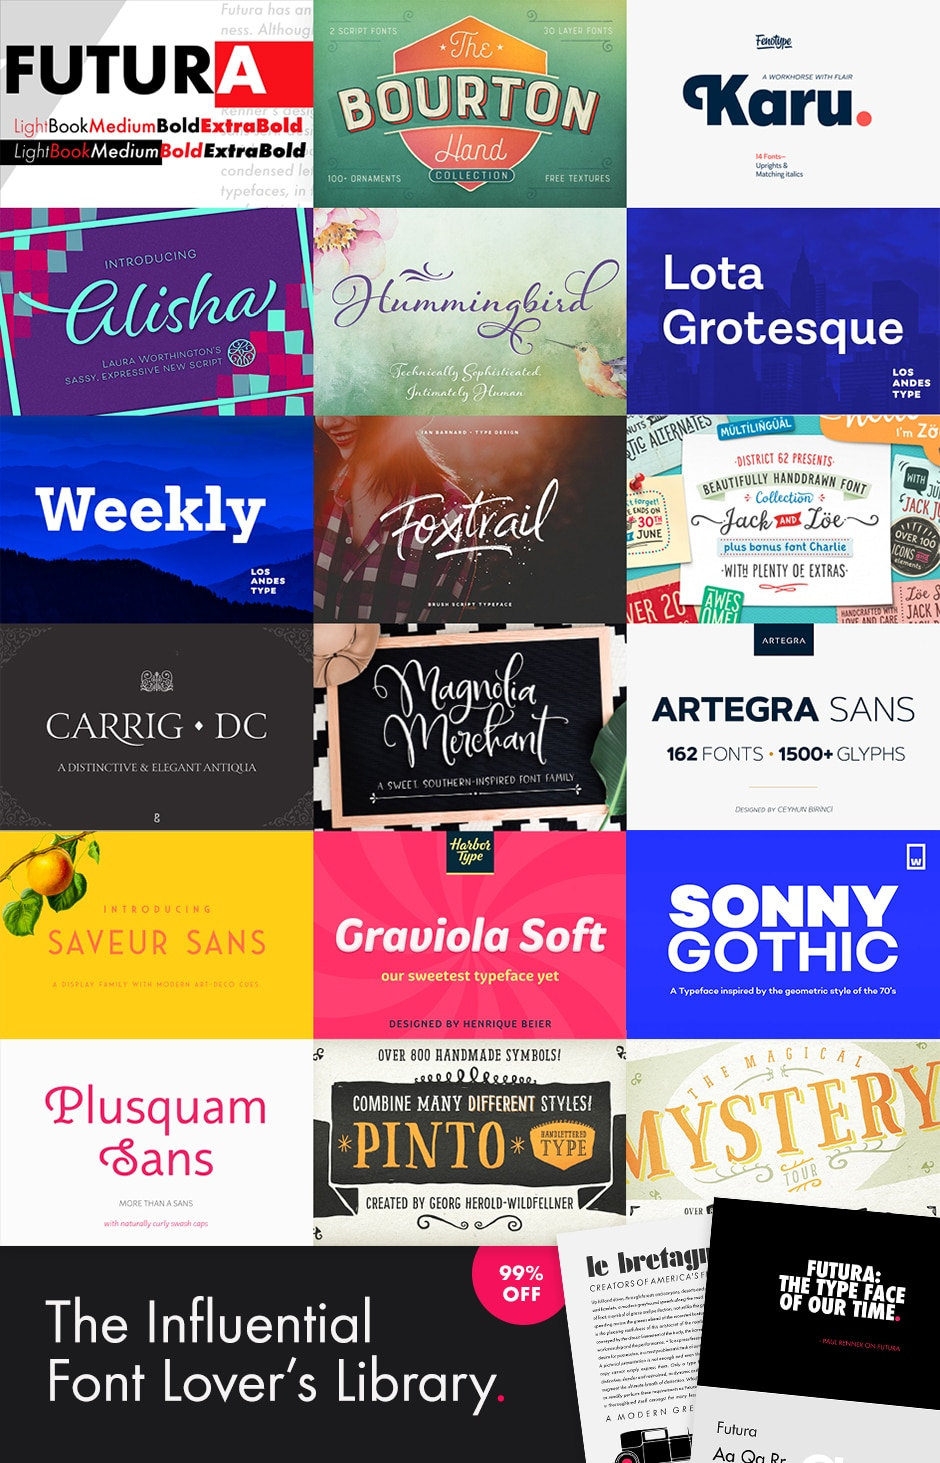 Save $3465 on The Influential Font Lover's Library